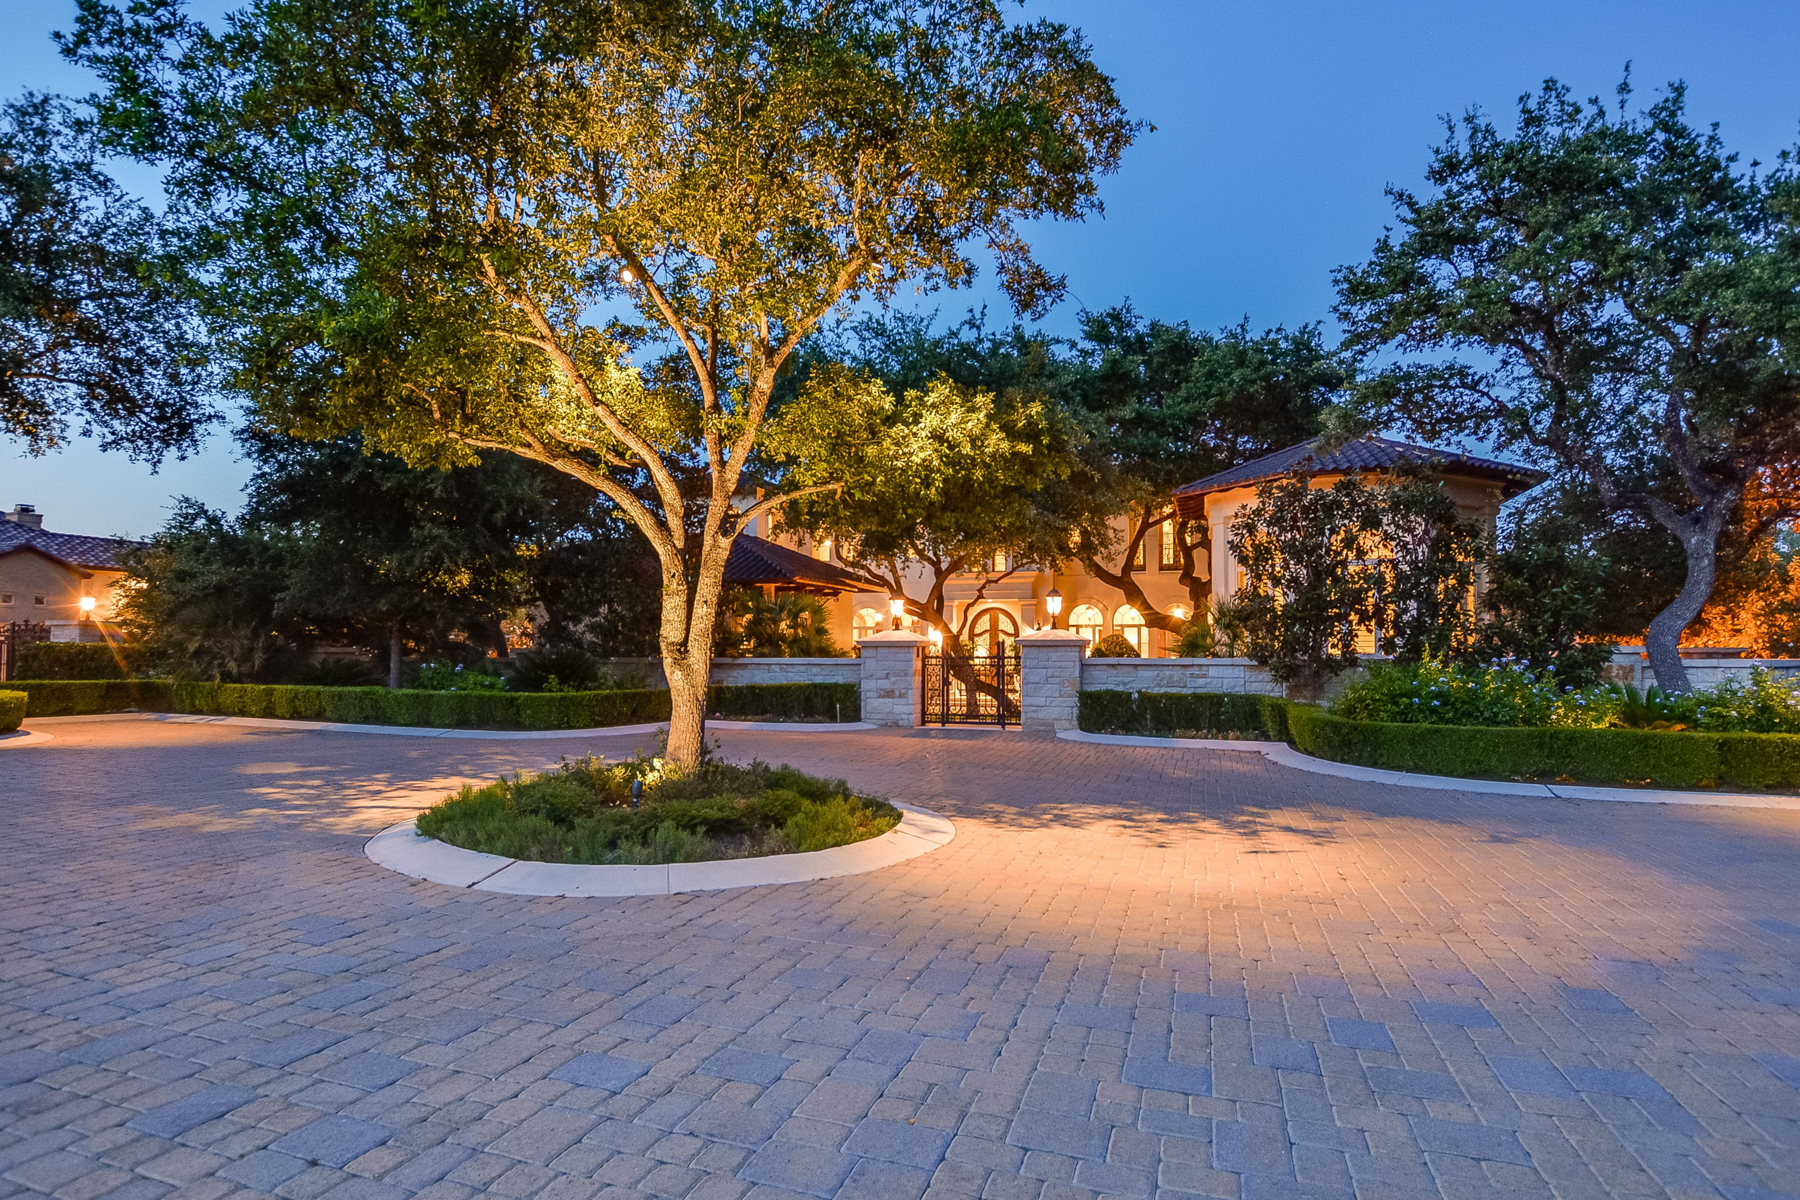 獨棟家庭住宅 為 出售 在 Breathtaking Masterpiece in Huntington 238 Winding Ln San Antonio, 德克薩斯州, 78231 美國